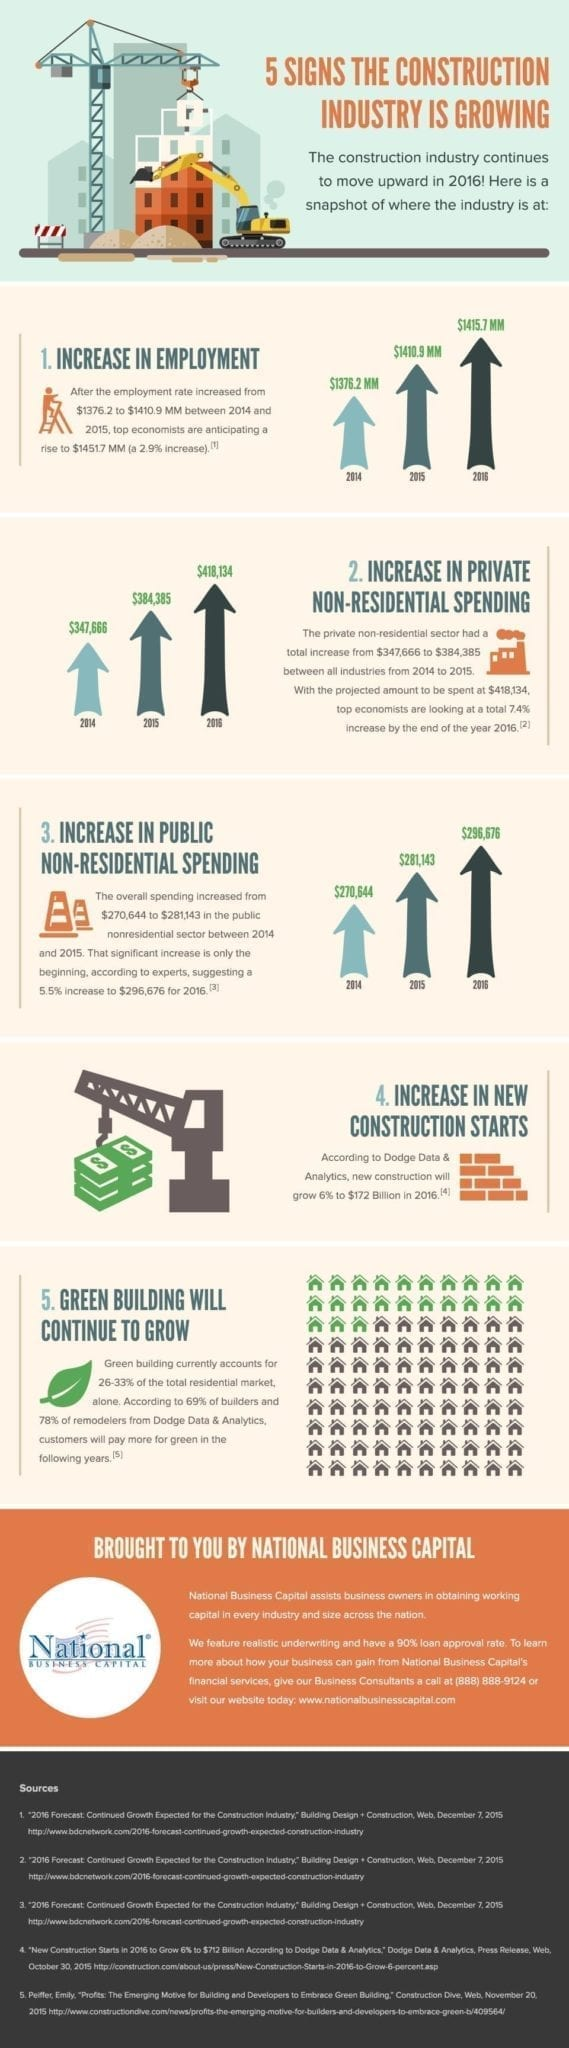 Construction Industry is Growing